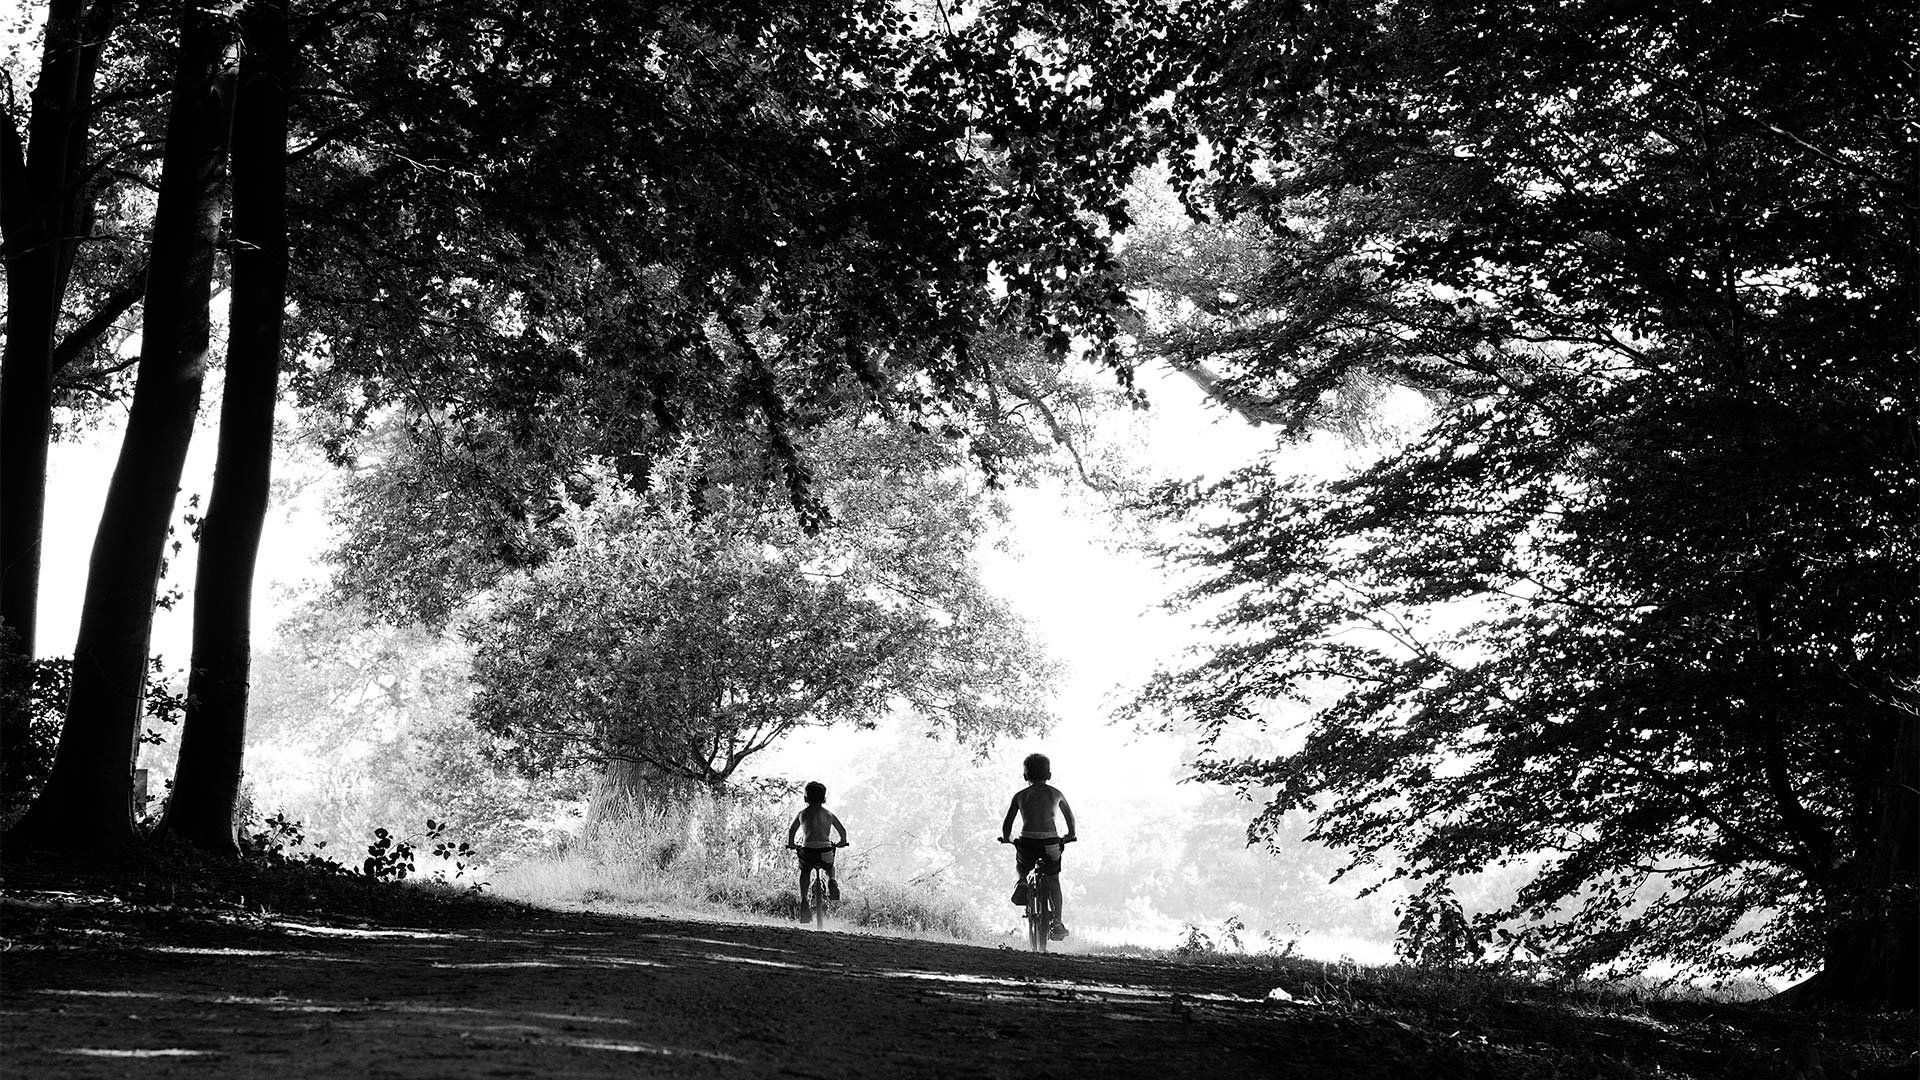 Children ride bikes through trees.